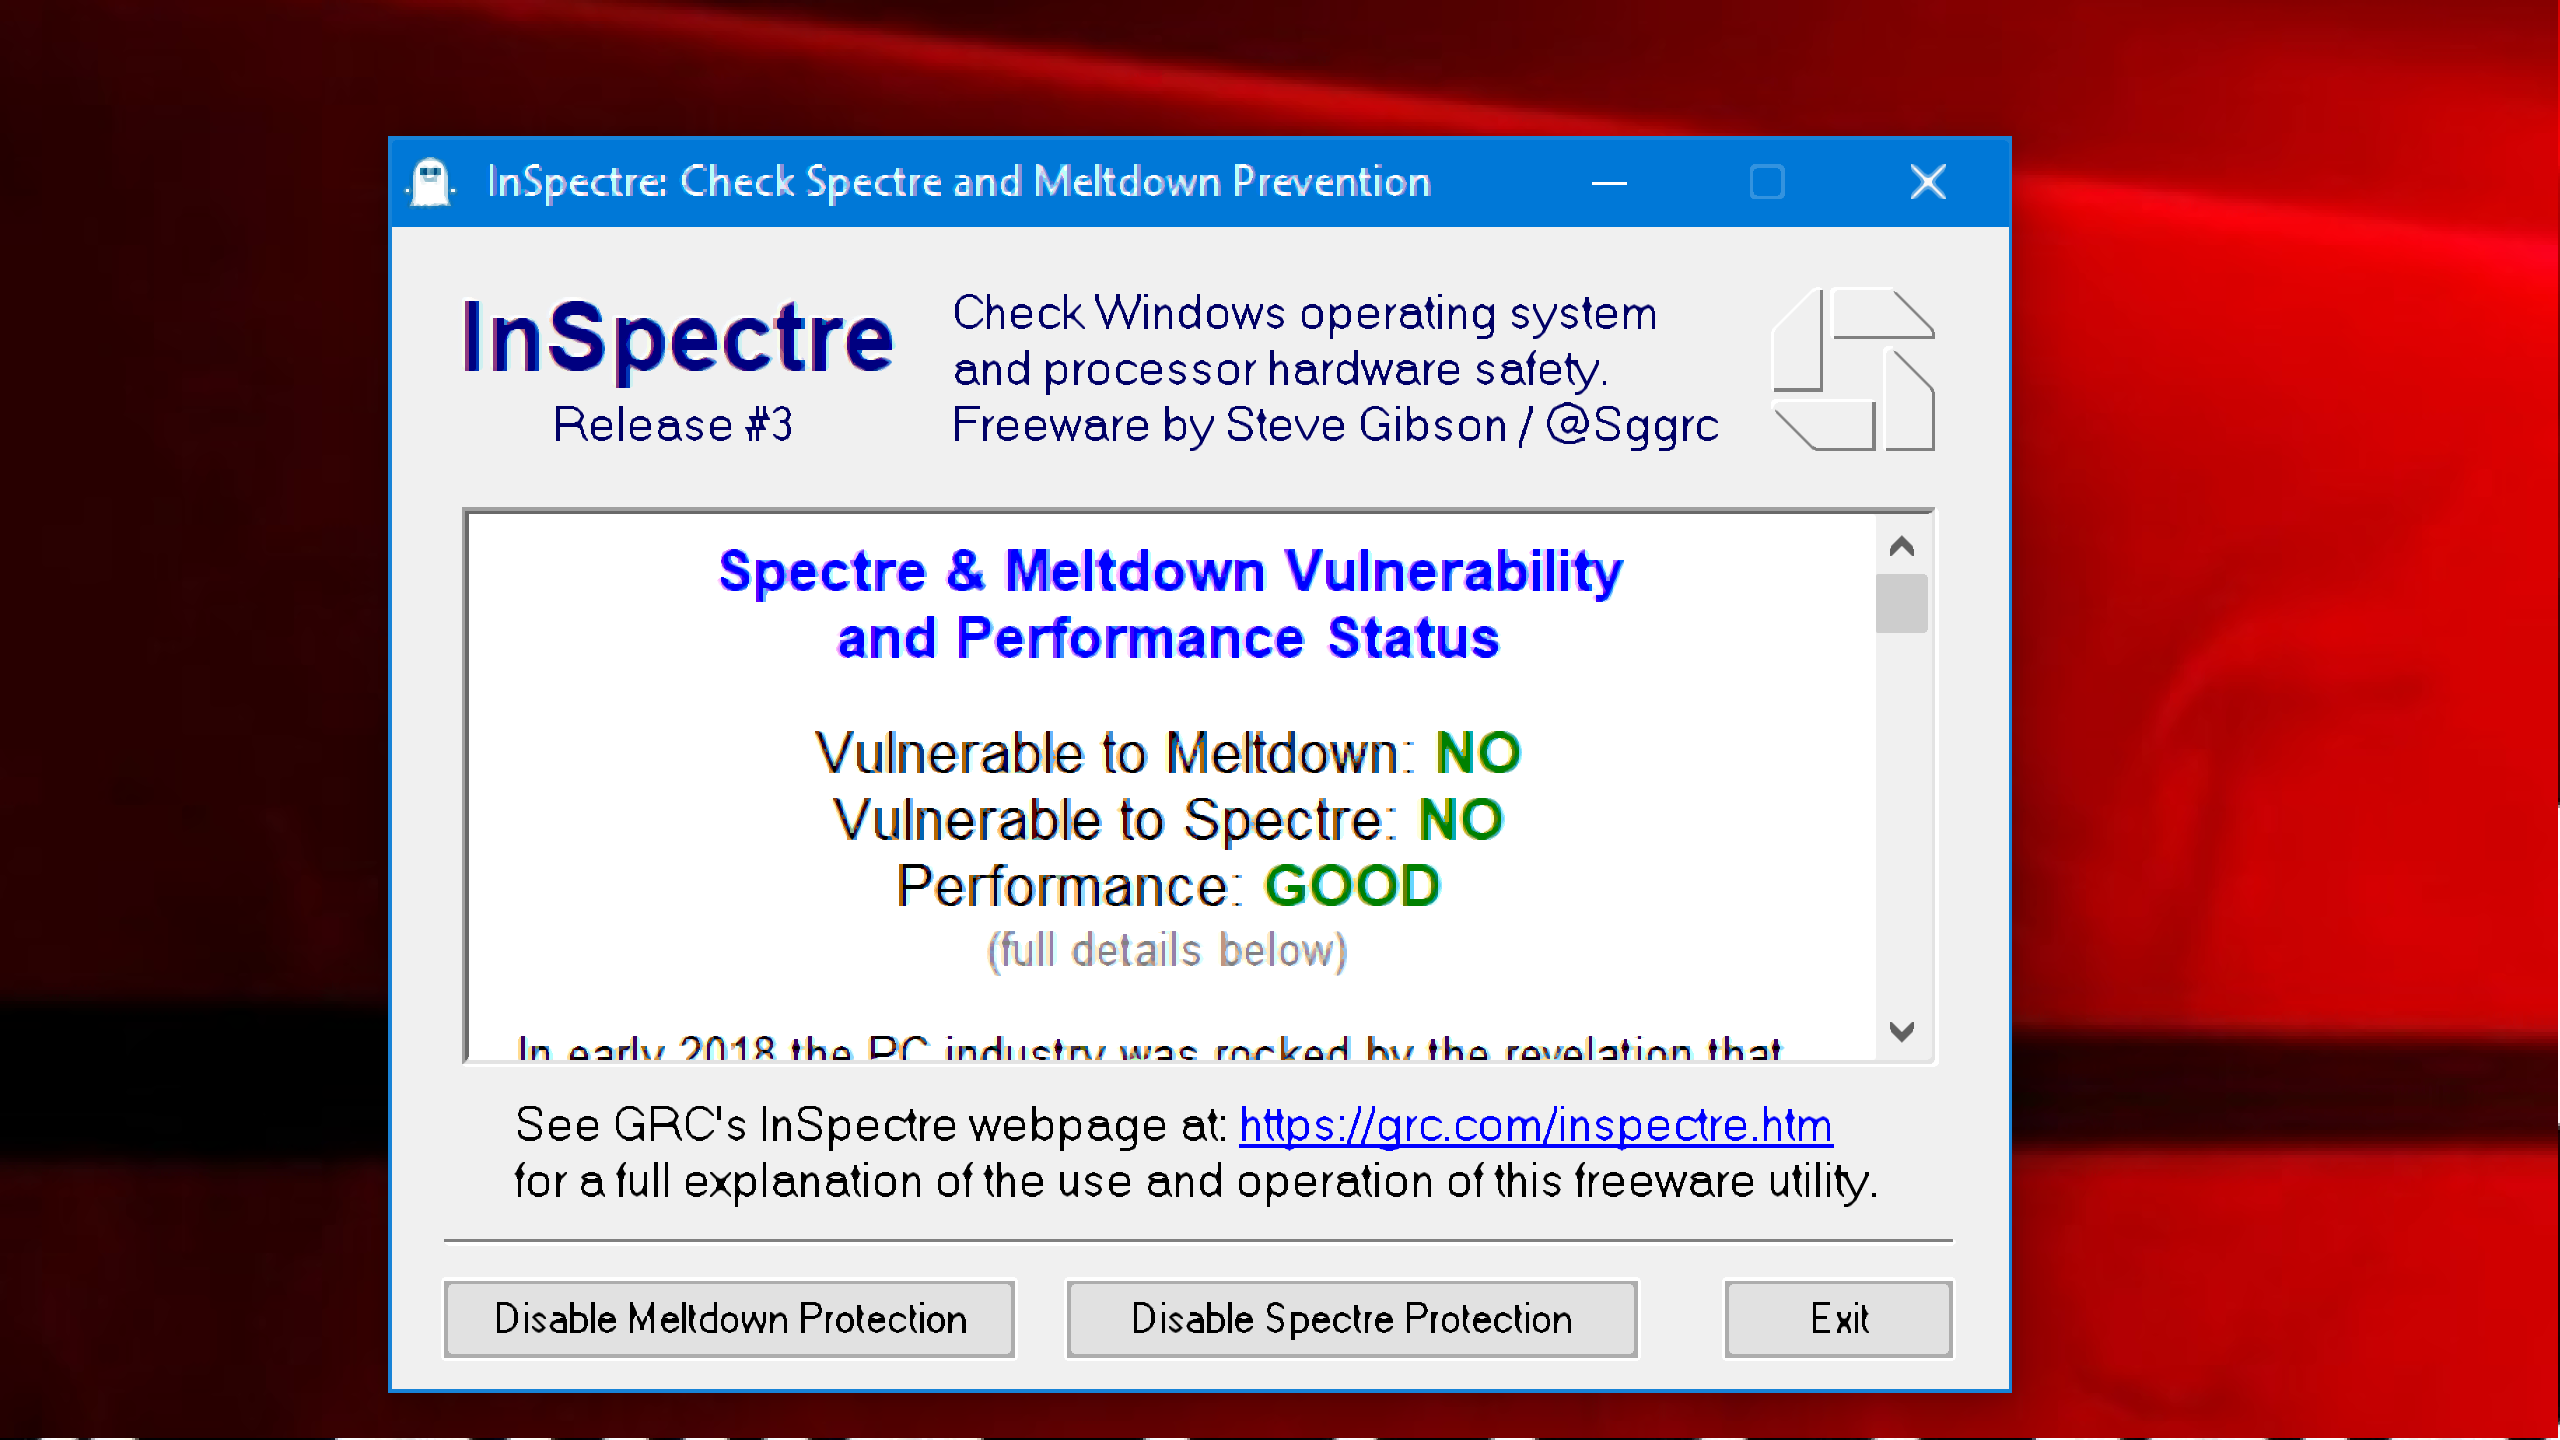 New vulnerabilities incoming - Spectre-NG | Page 2 | TechPowerUp Forums